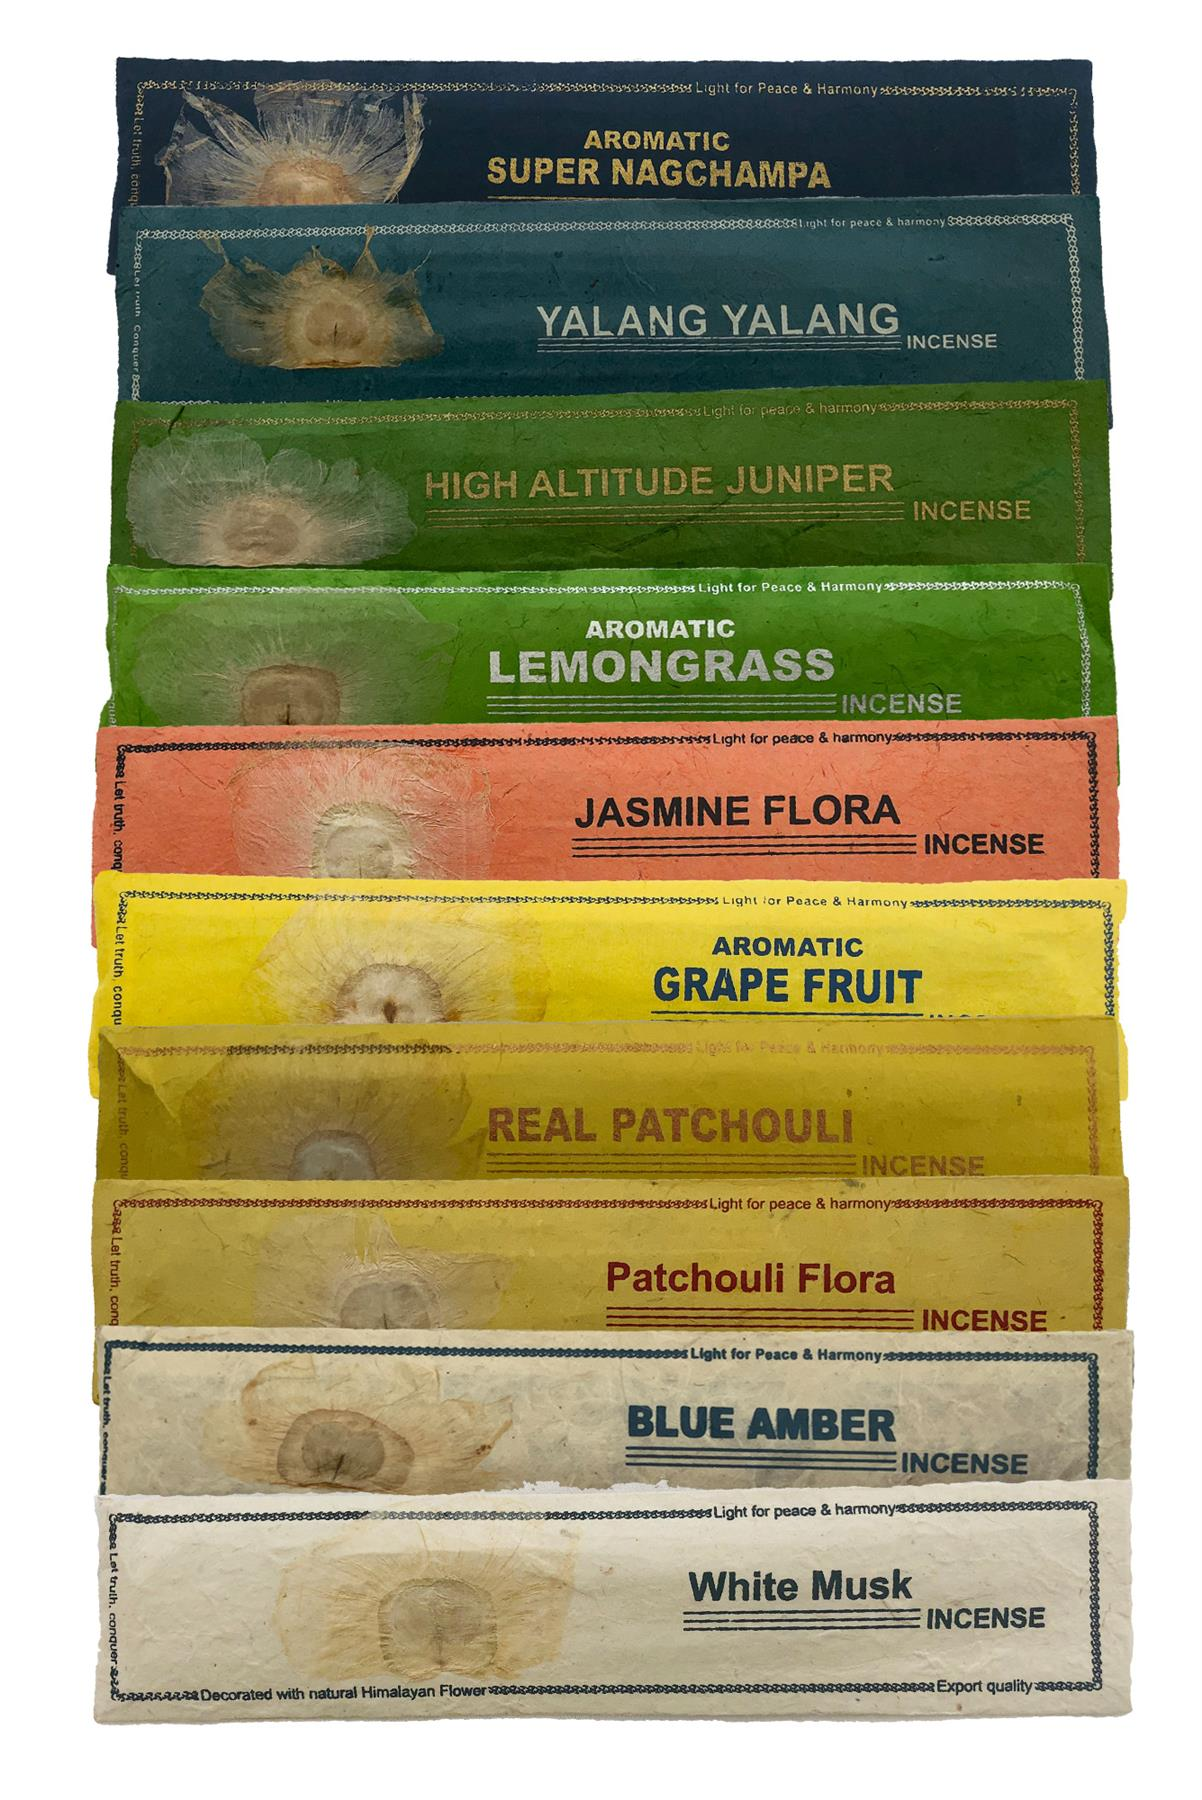 Himalayan flower natural incense